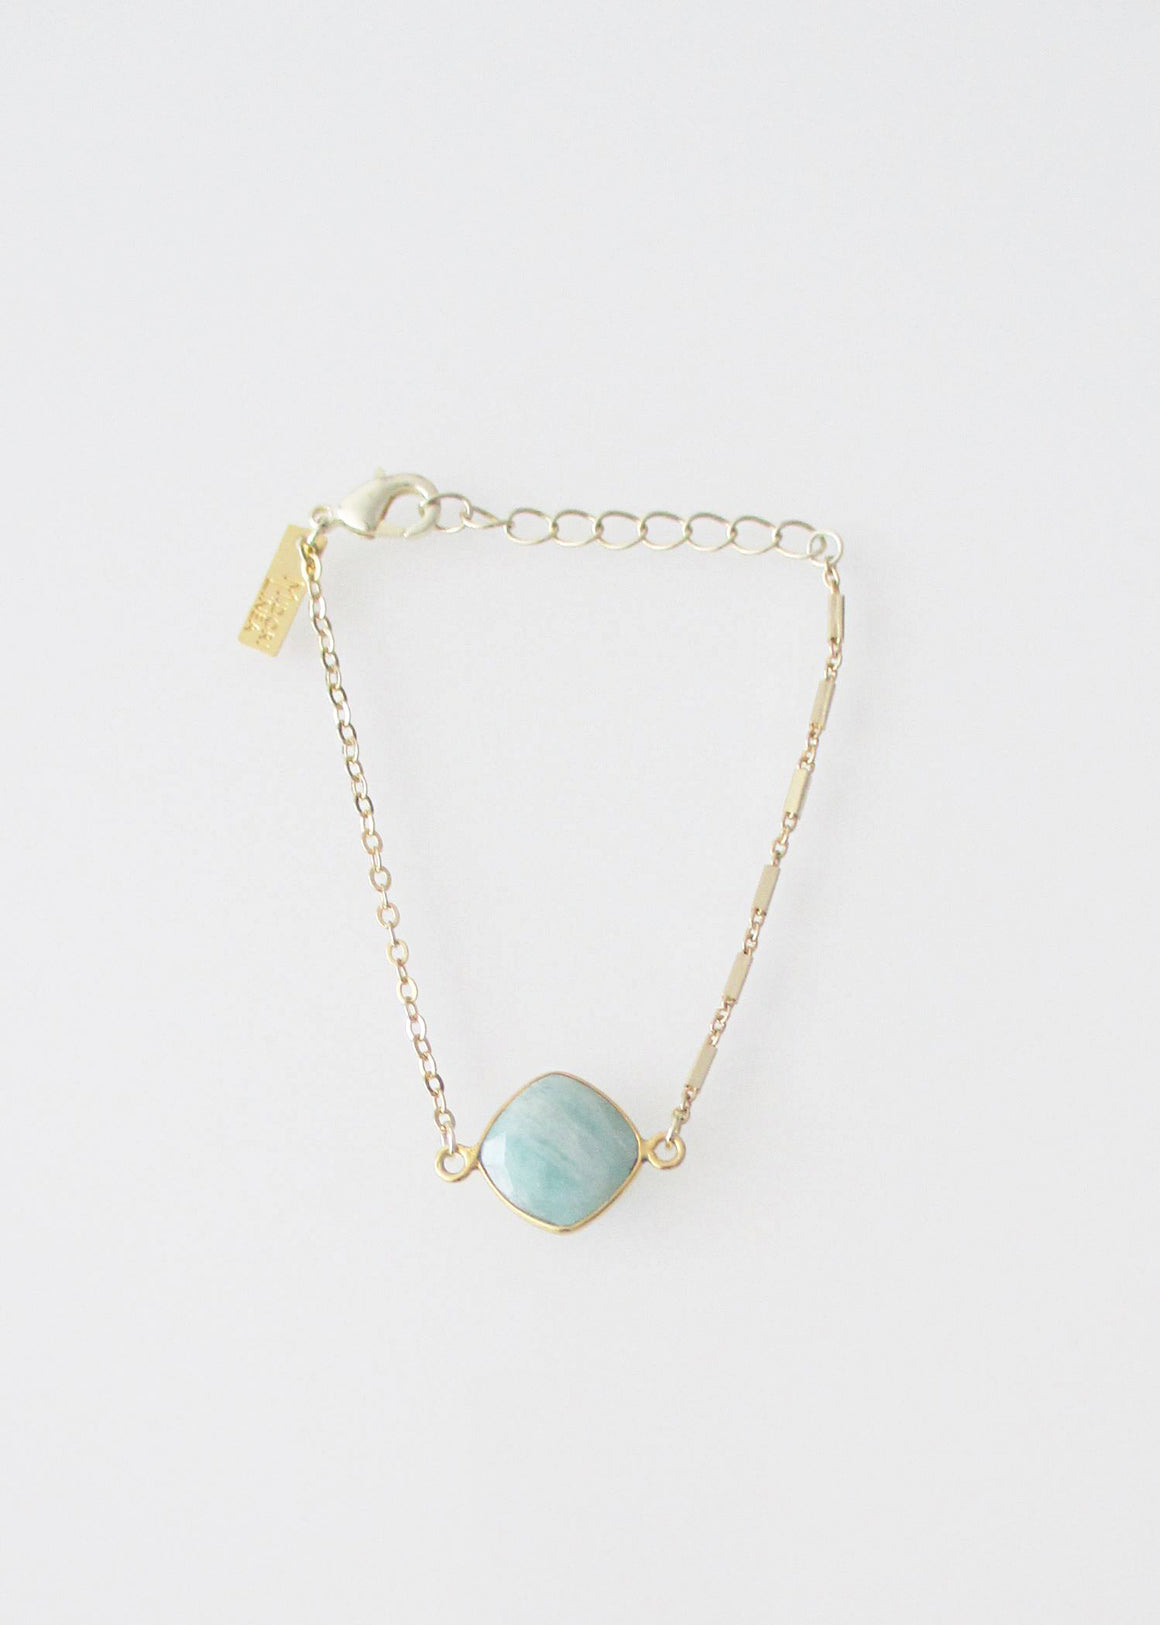 LiVEOUTLOUD MIXED CHAIN CELESTE AMAZONITE